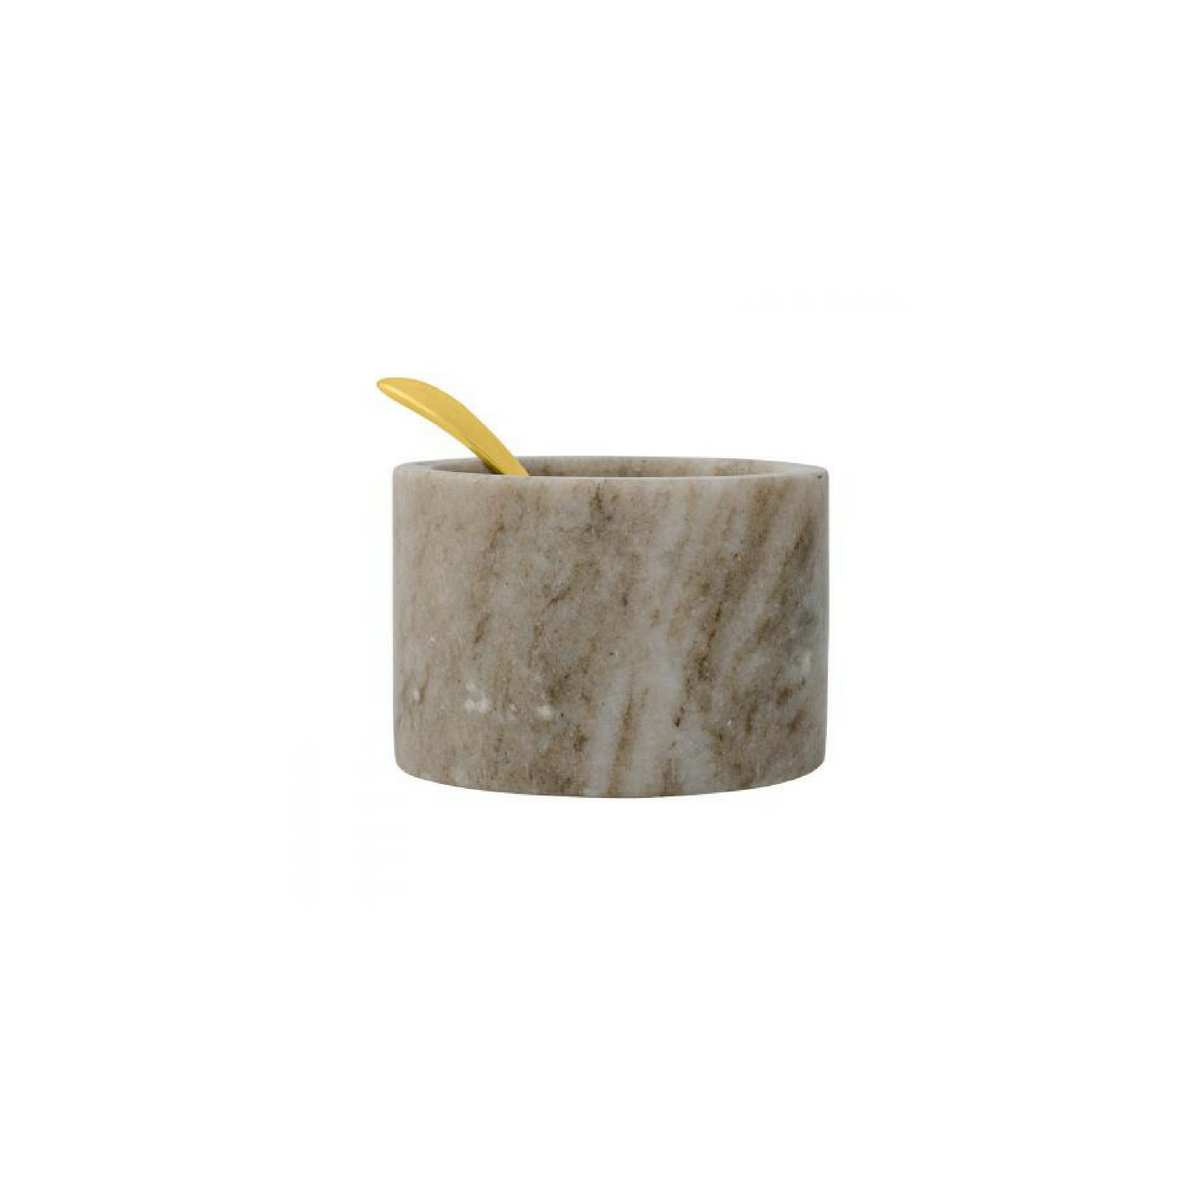 Marble Salt Jar with Gold Spoon